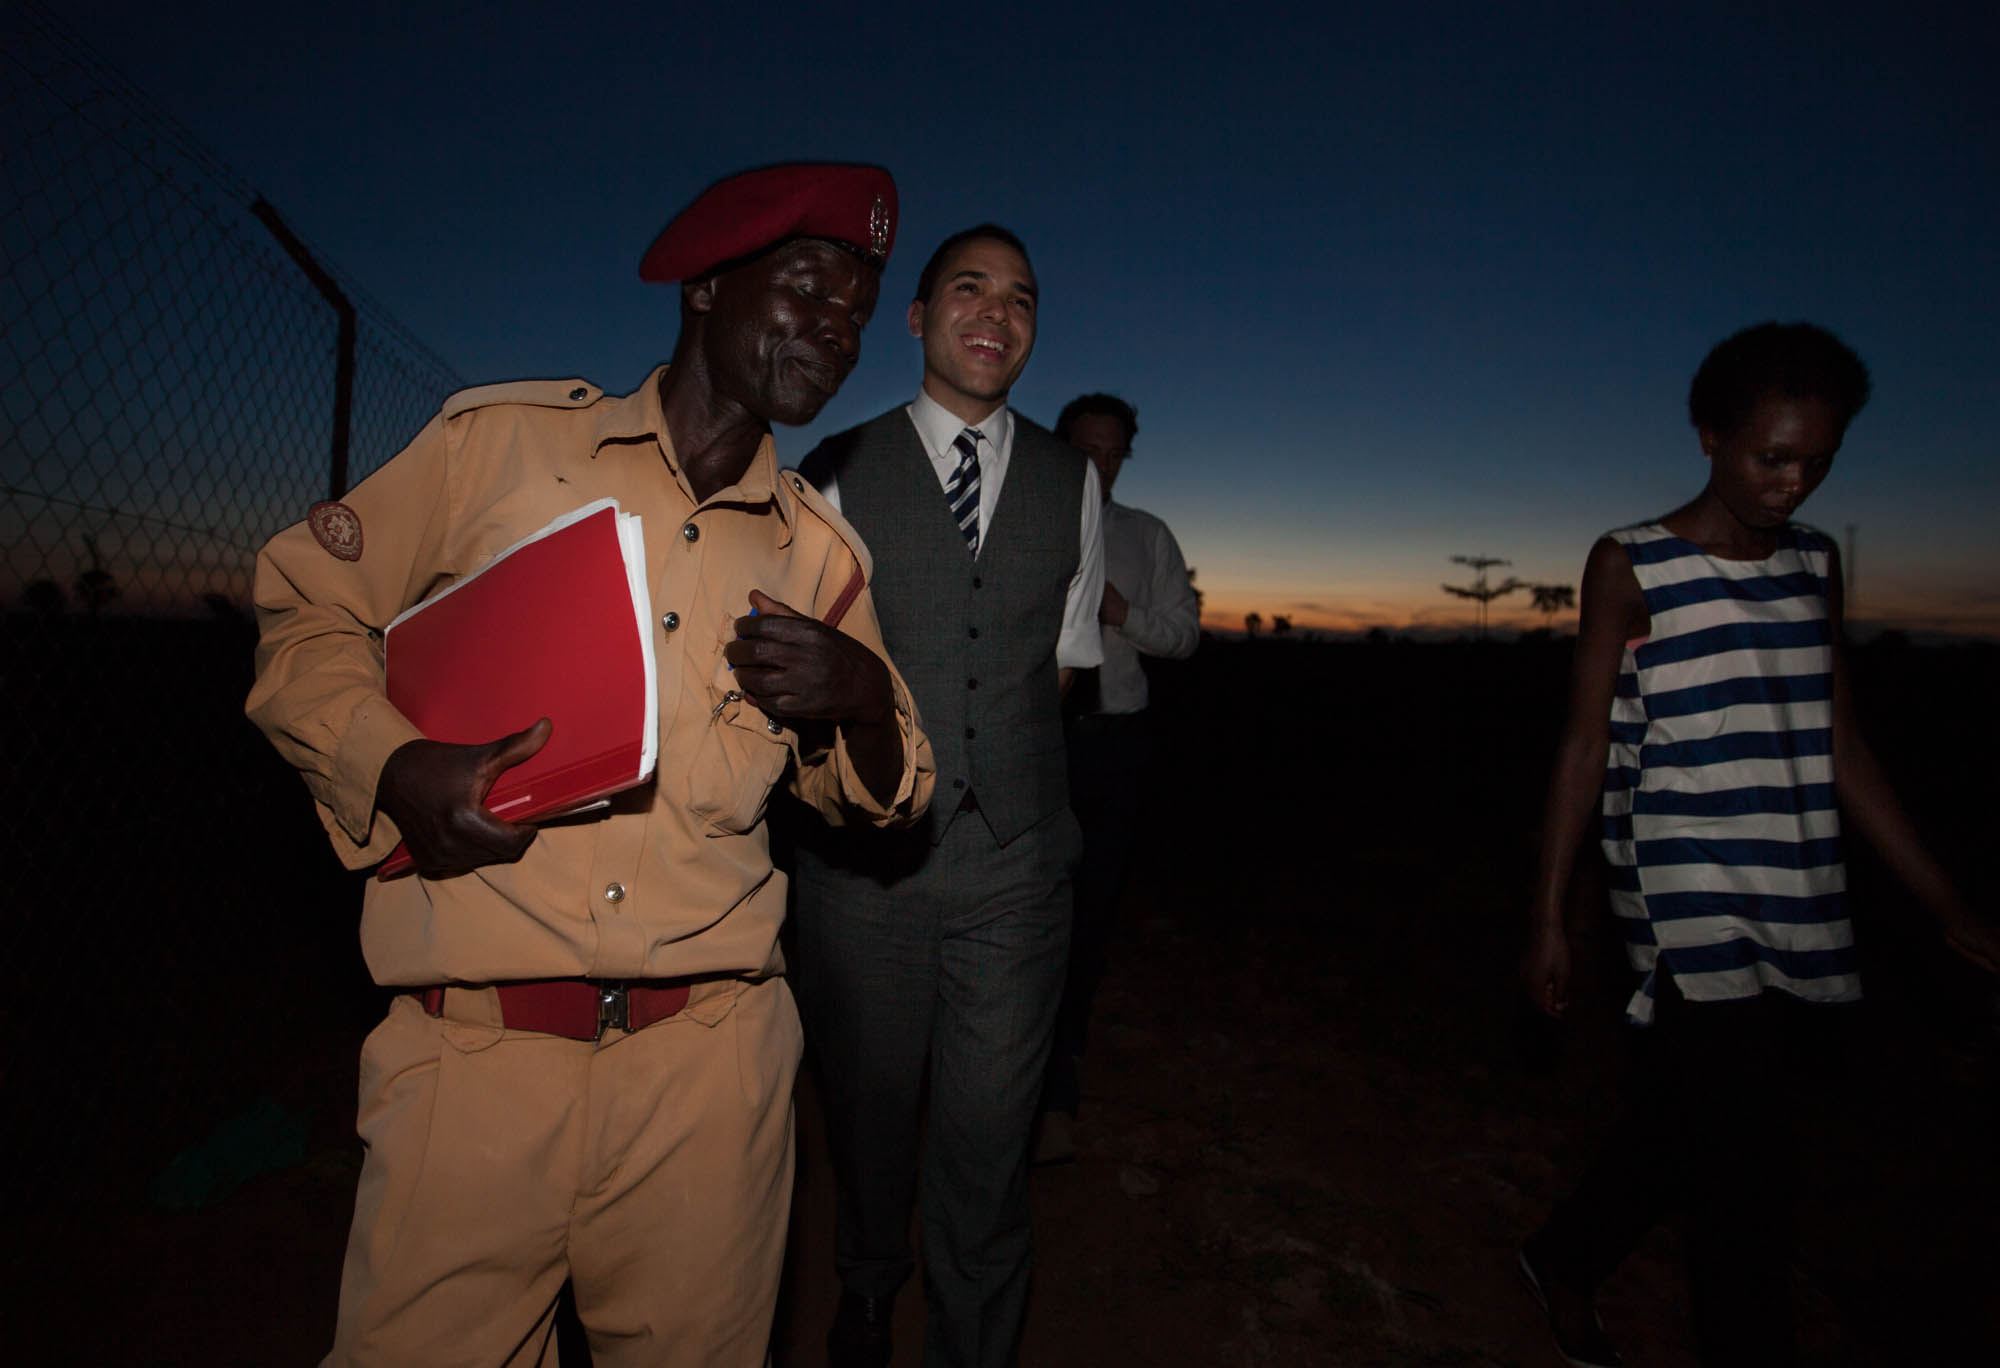 Paul, left, is a prison officer in Uganda who helped get 40 inmates released from prison. He's shown here with Alexander McLean and Agnes, who runs legal programs for the African Prisons Project in Uganda.